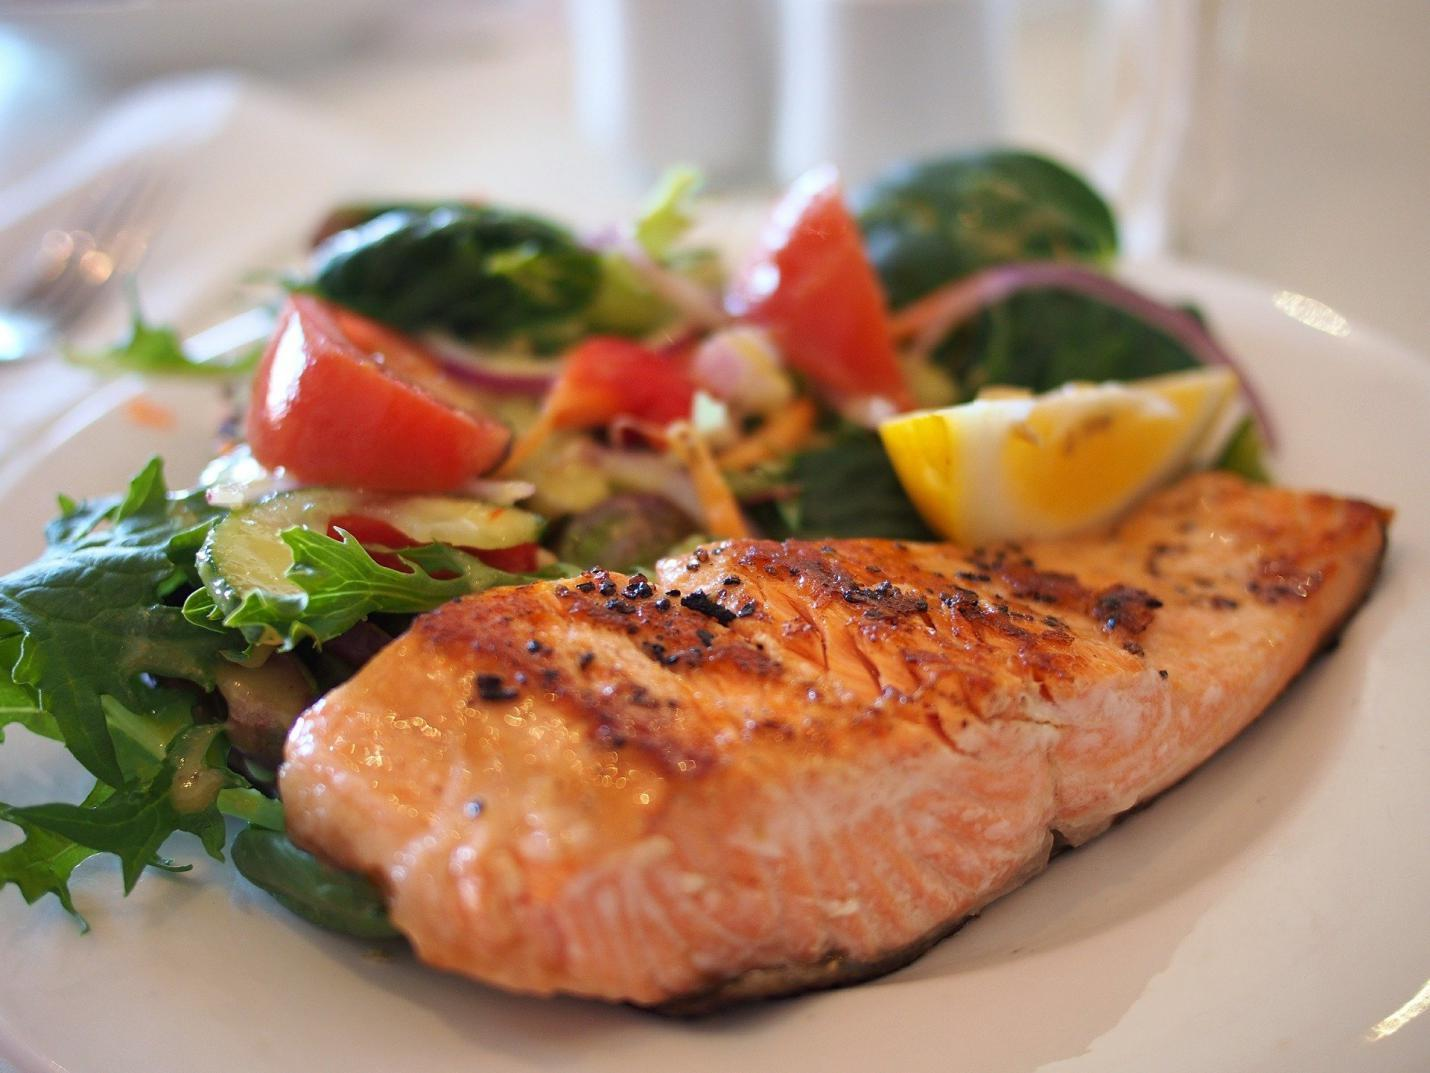 Home care healthy diet